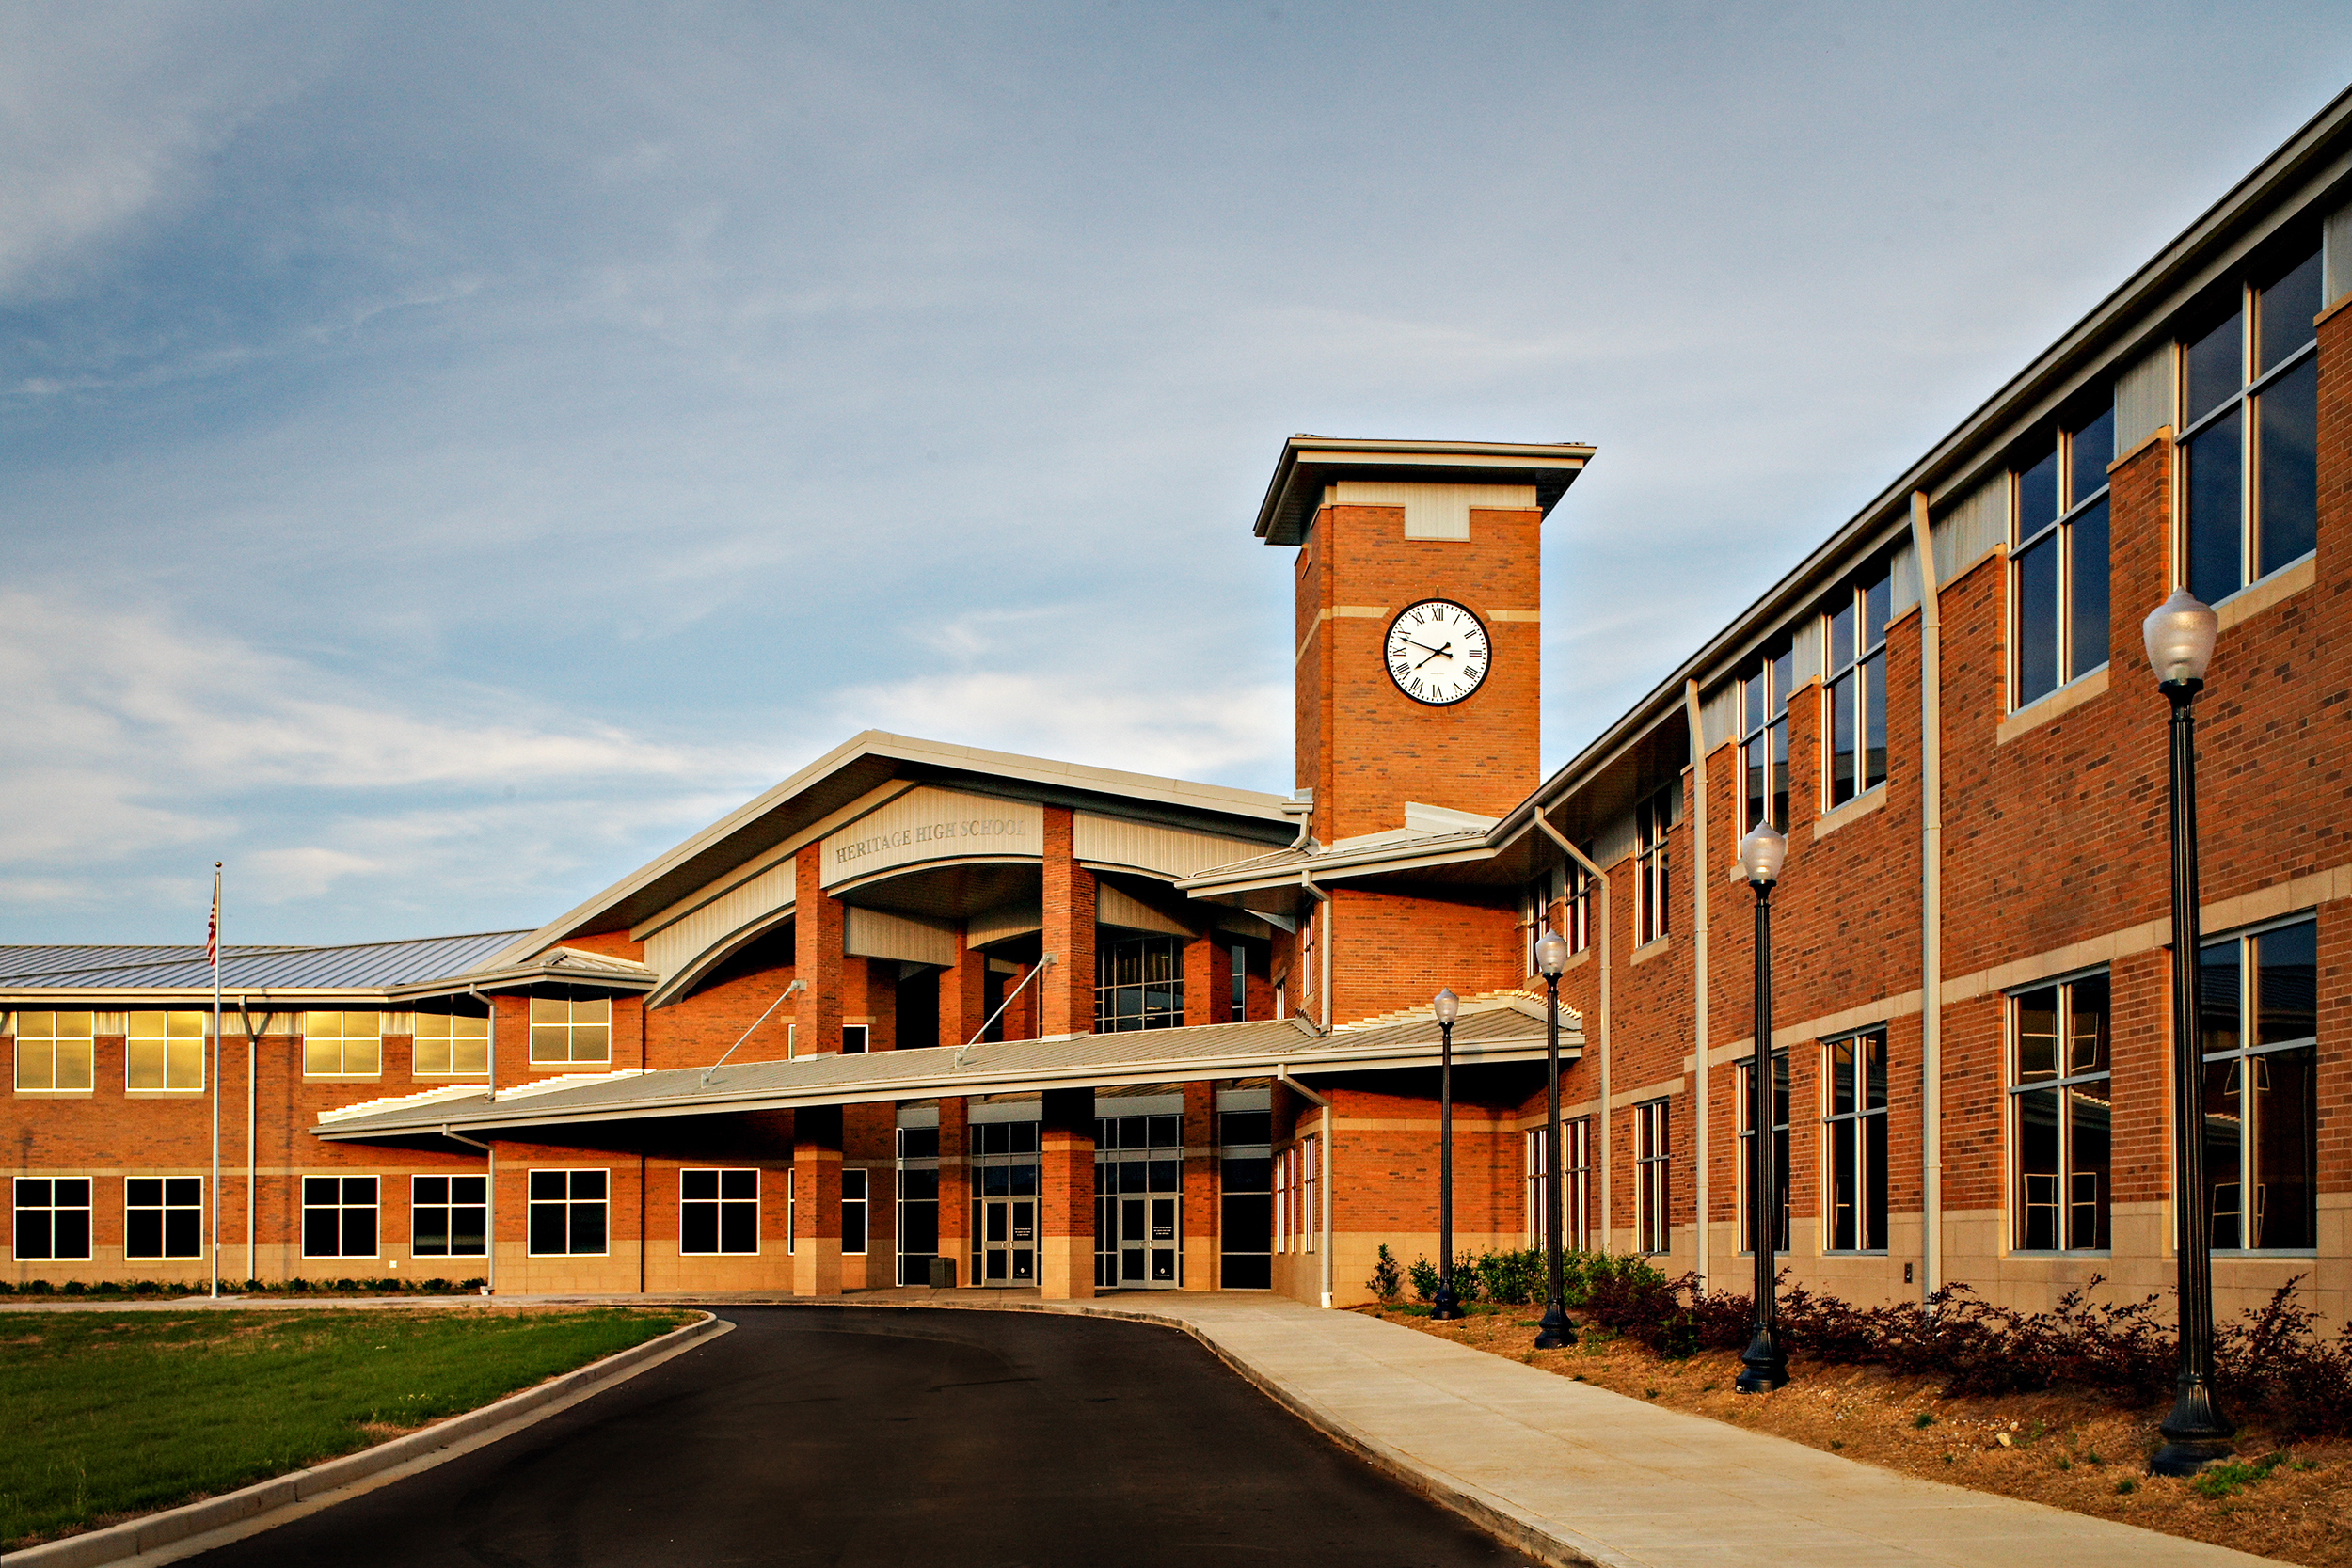 Heritage High School   This 250,000 sf comprehensive high school is designed to address the growing enrollment of the Catoosa County Schools.   The overall campus includes a 3,000 seat football/track stadium, soccer, baseball and softball stadiums, as well as tennis courts.